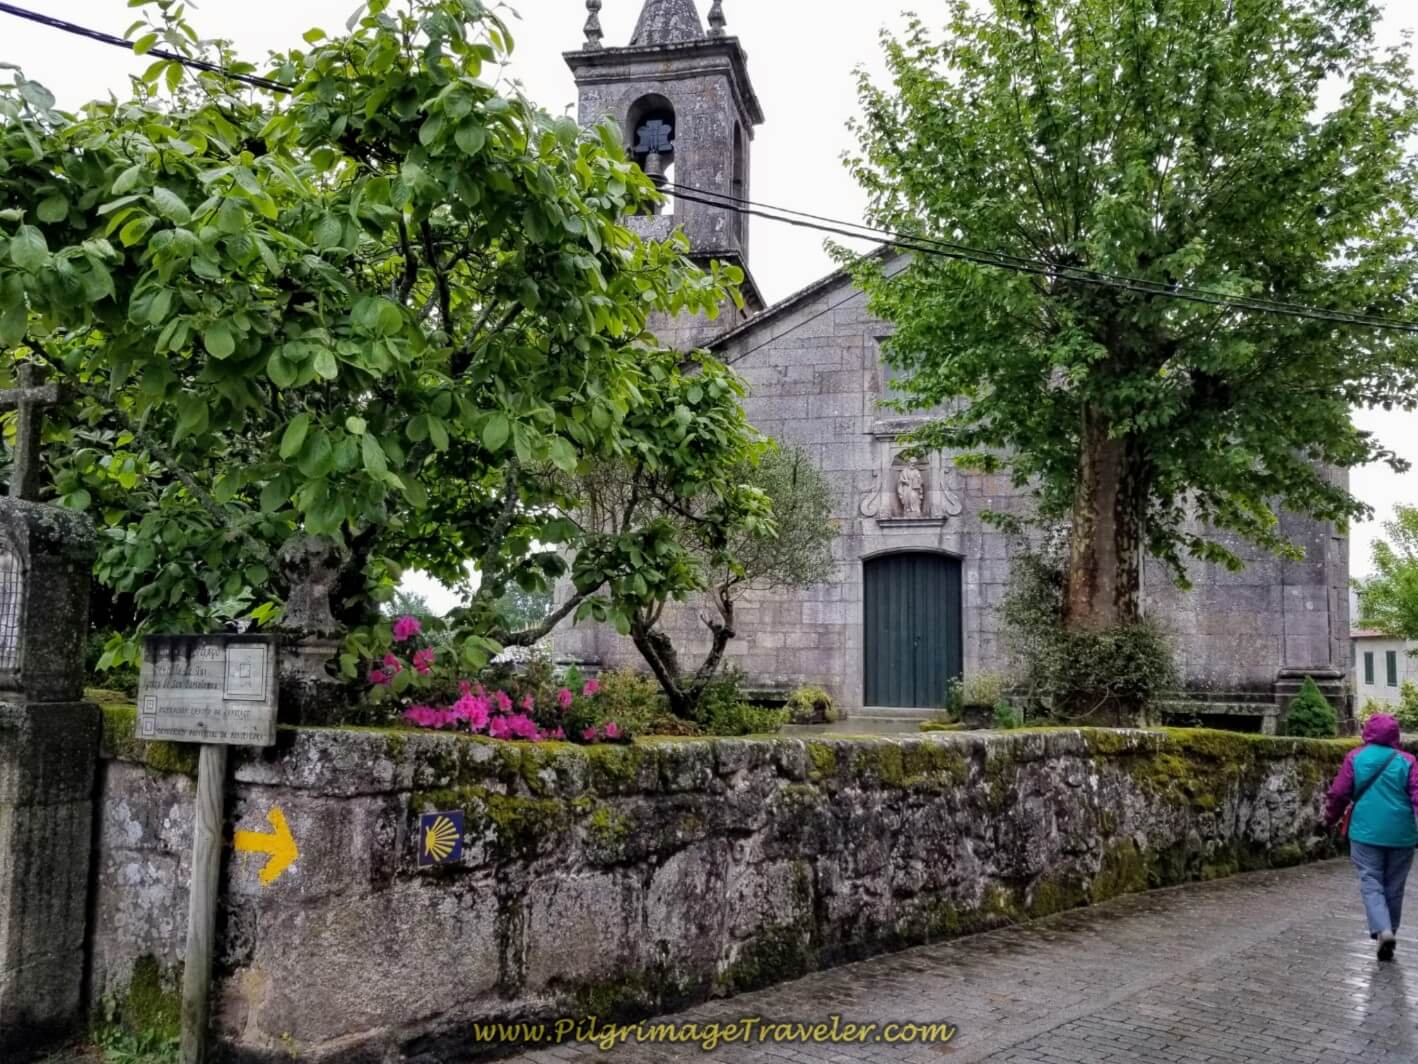 Igrexa de San Bartolomeu in Tui, on day twenty on the central route of the Portuguese Camino